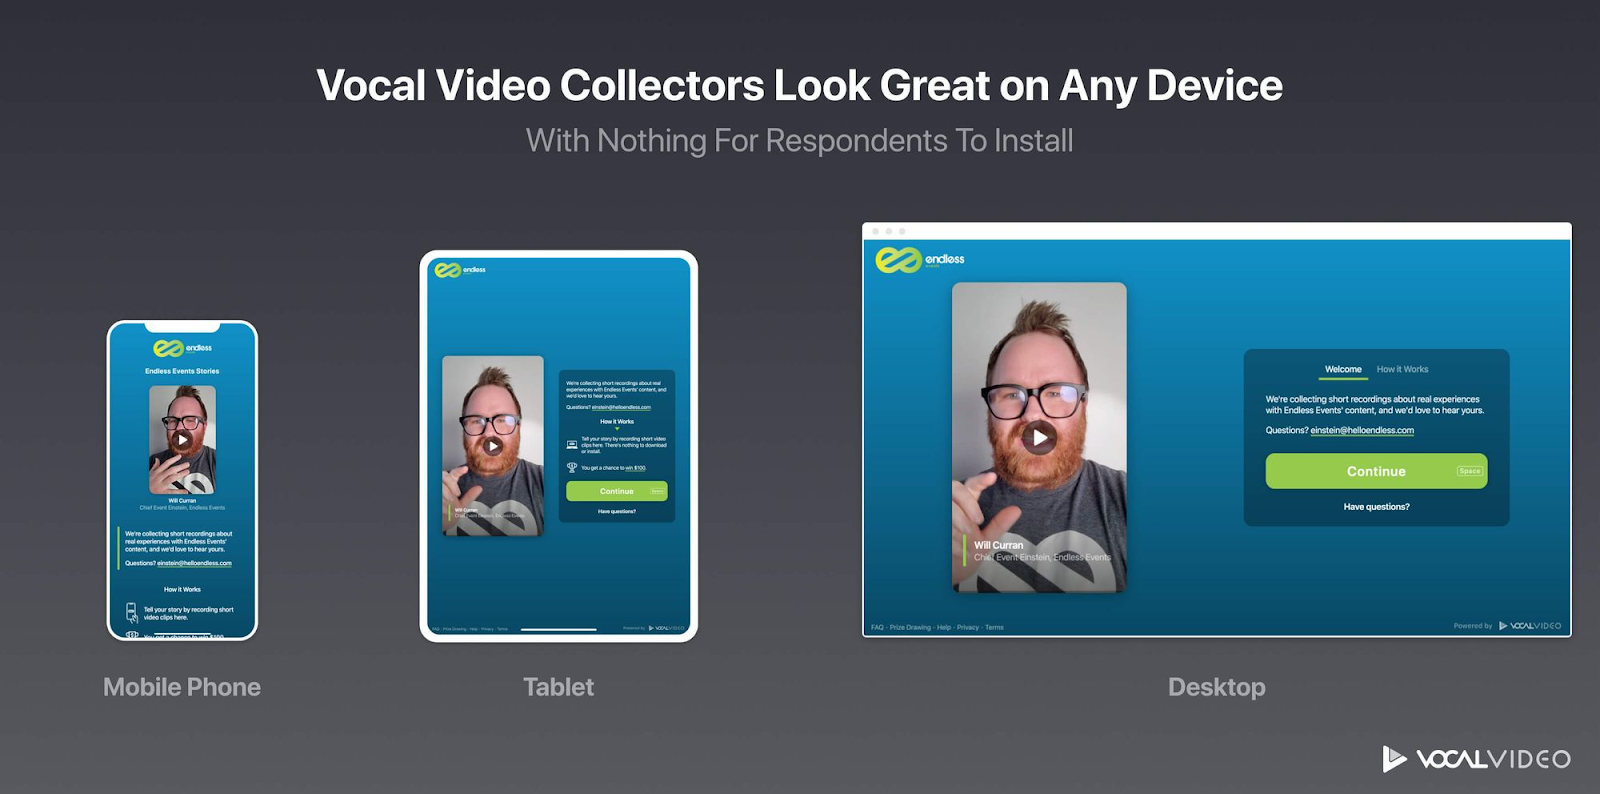 Vocal Video Collectors Look Great on Any Device: With nothing for respondents to install.